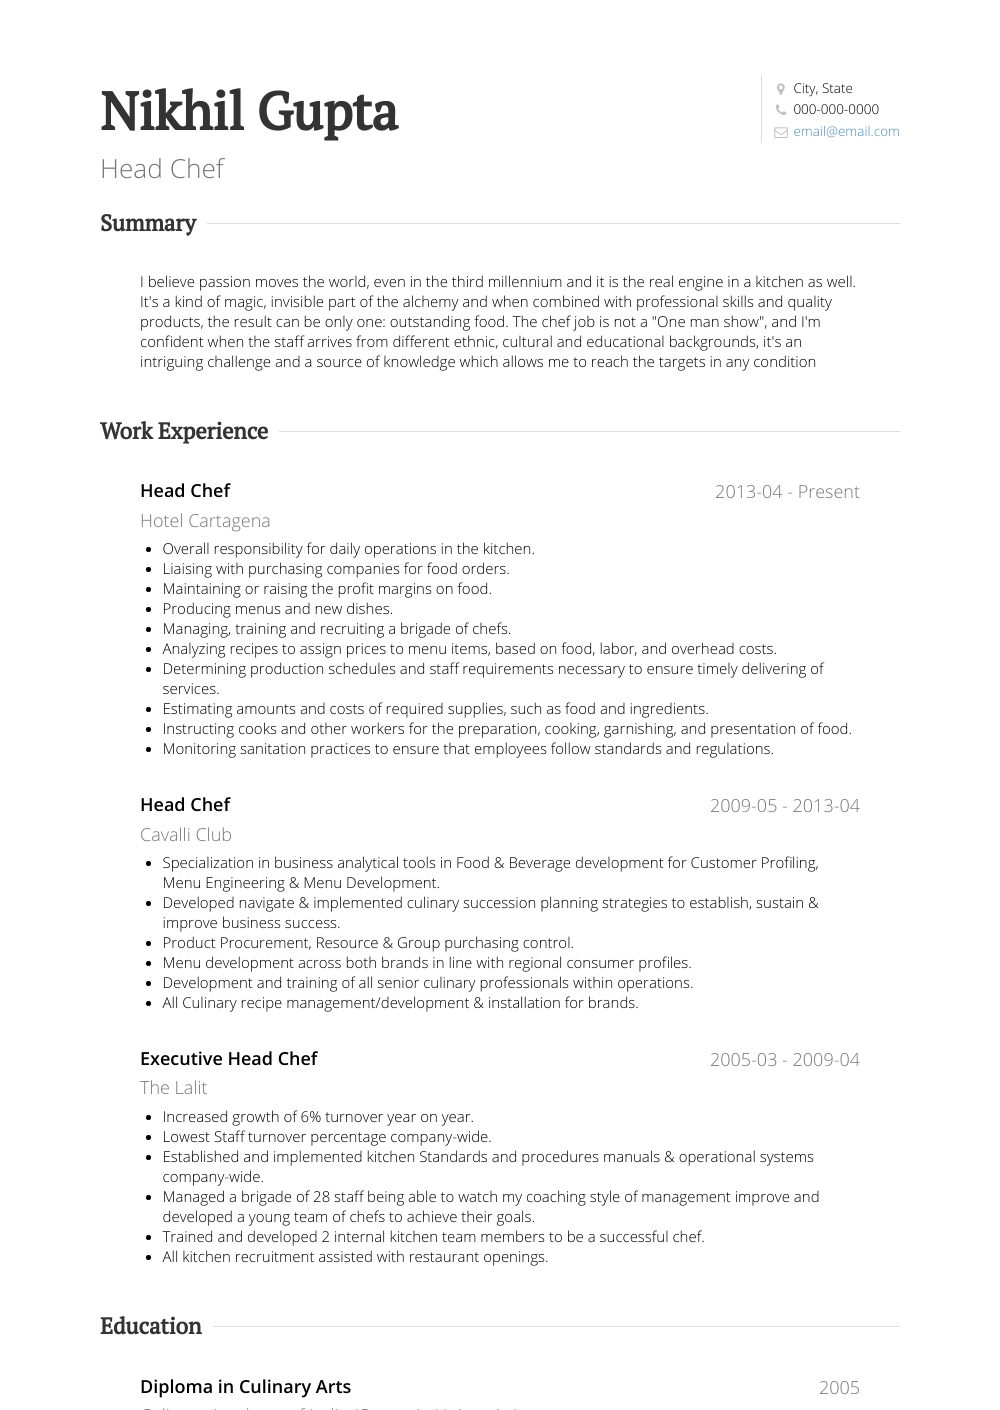 Head Chef Resume Sample and Template